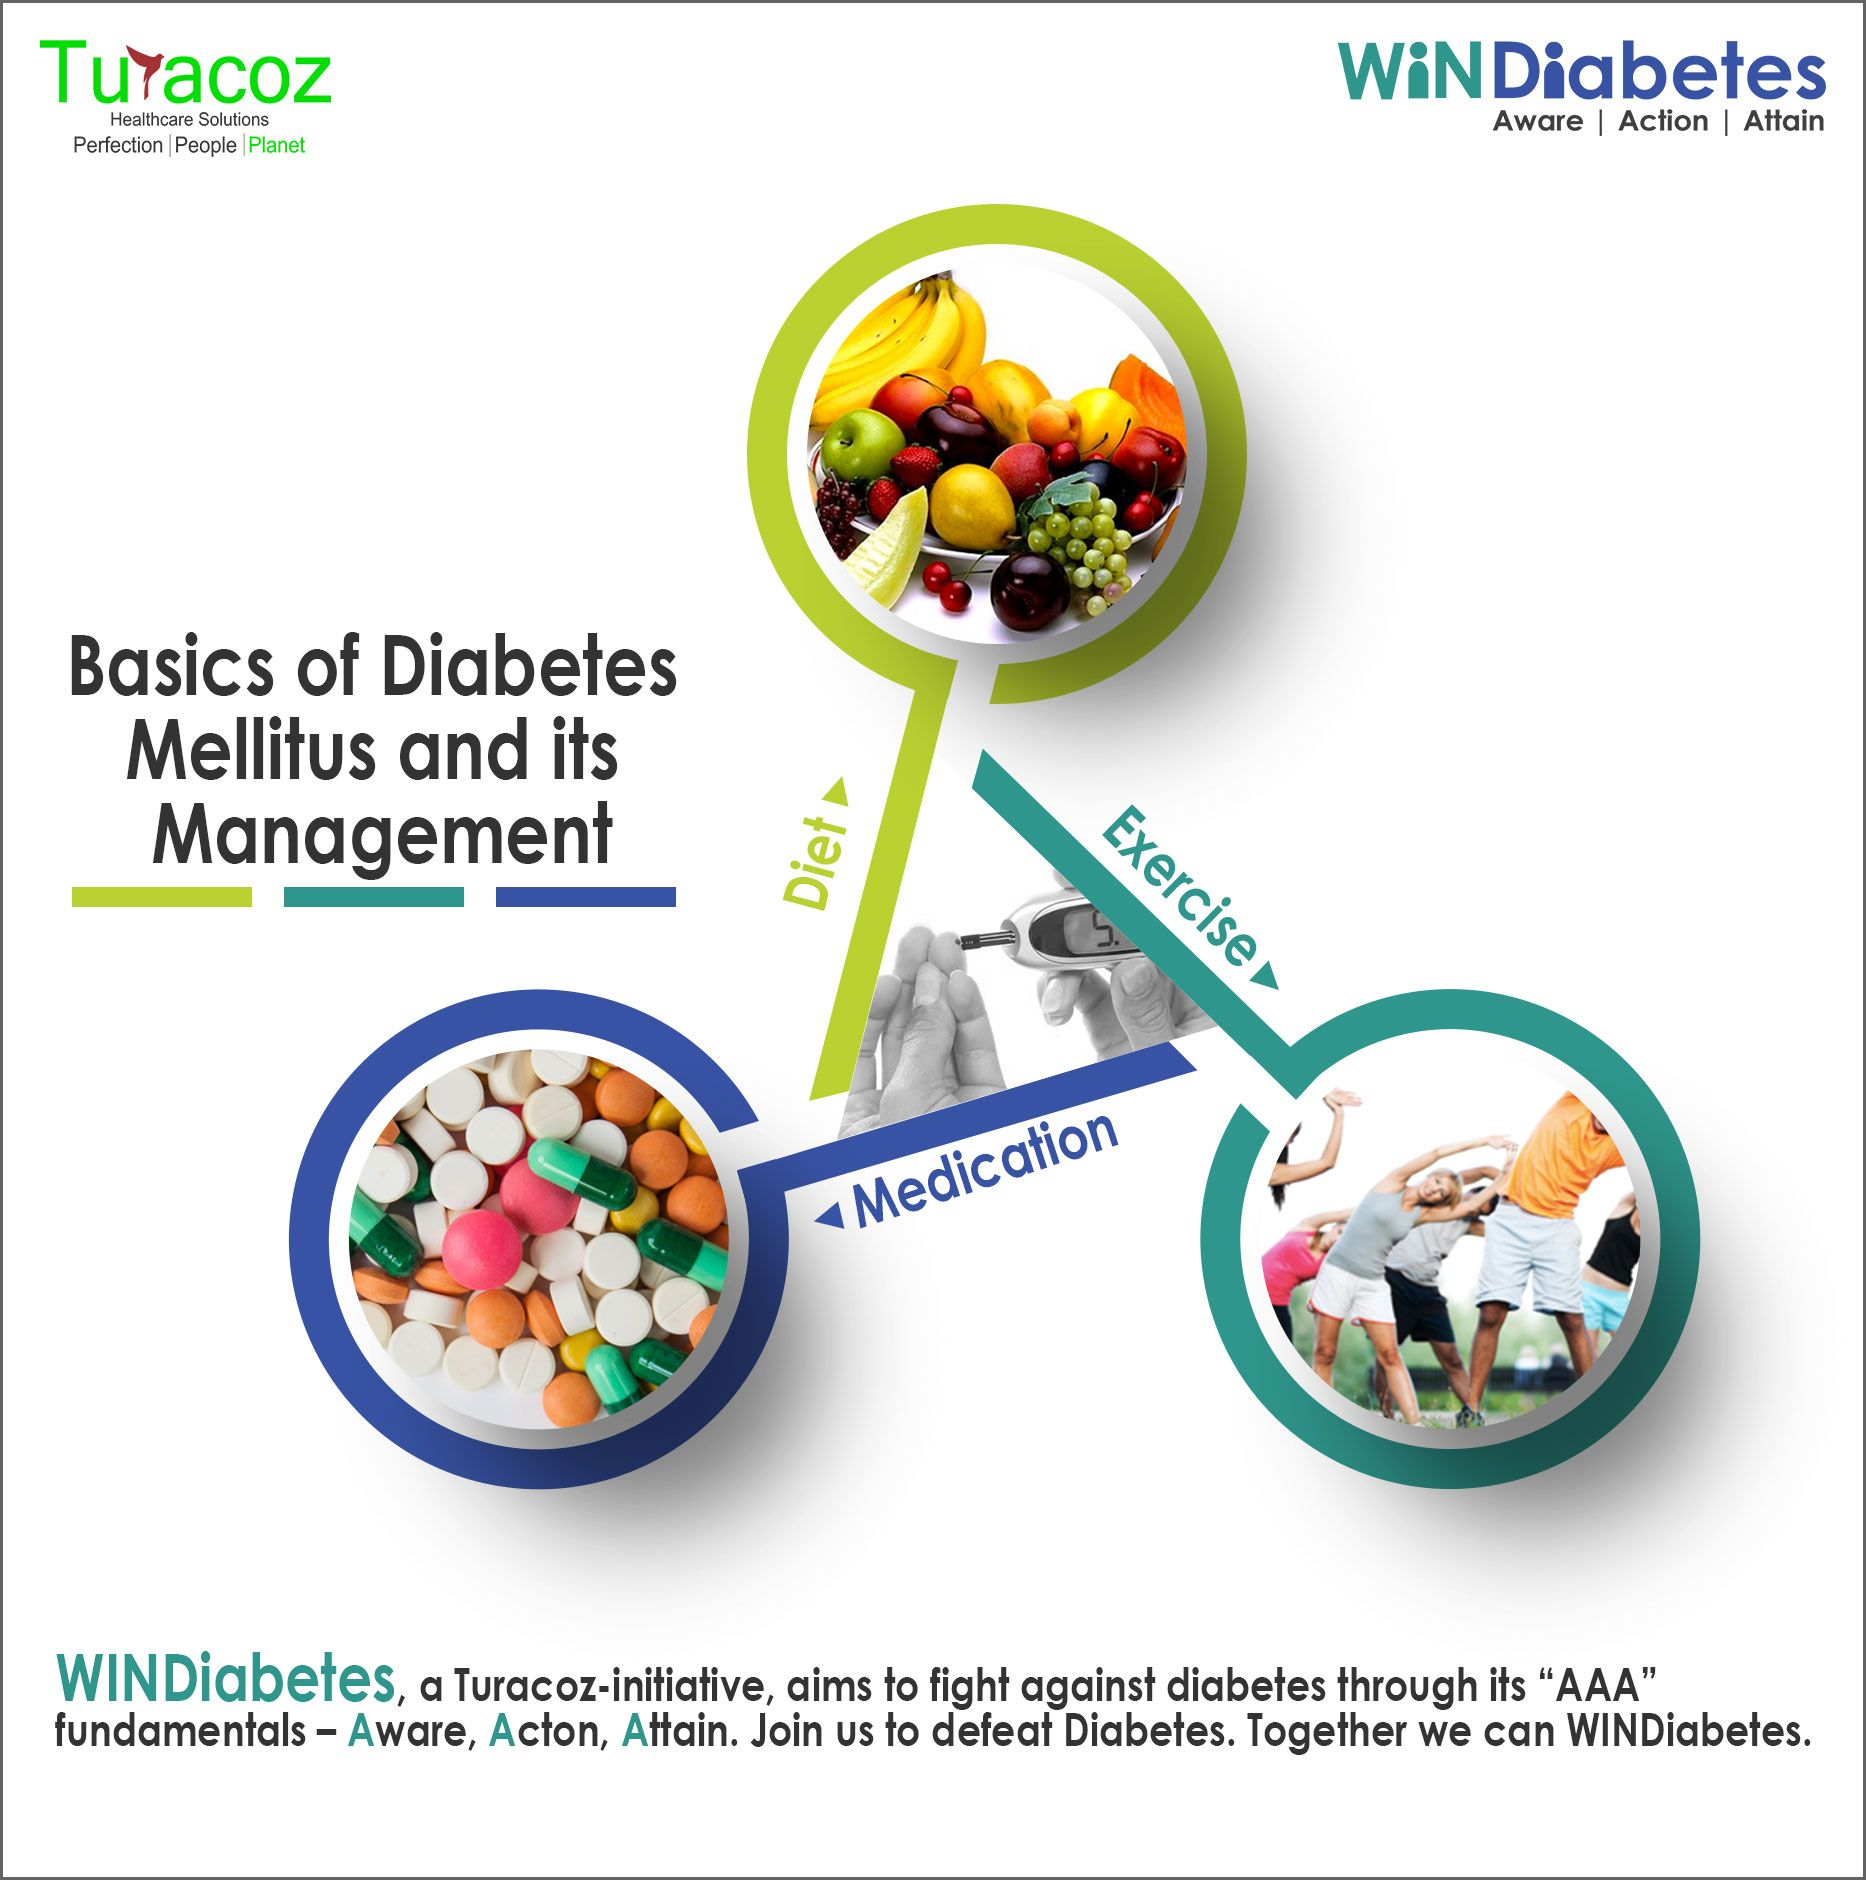 """#TuracozHealthcareSolutions-initiative, aims to fight against diabetes through its """" #AAA """" fundamentals – #Aware, #Acton, #Attain. Join us to defeat Diabetes. Together we can WINDiabetes."""